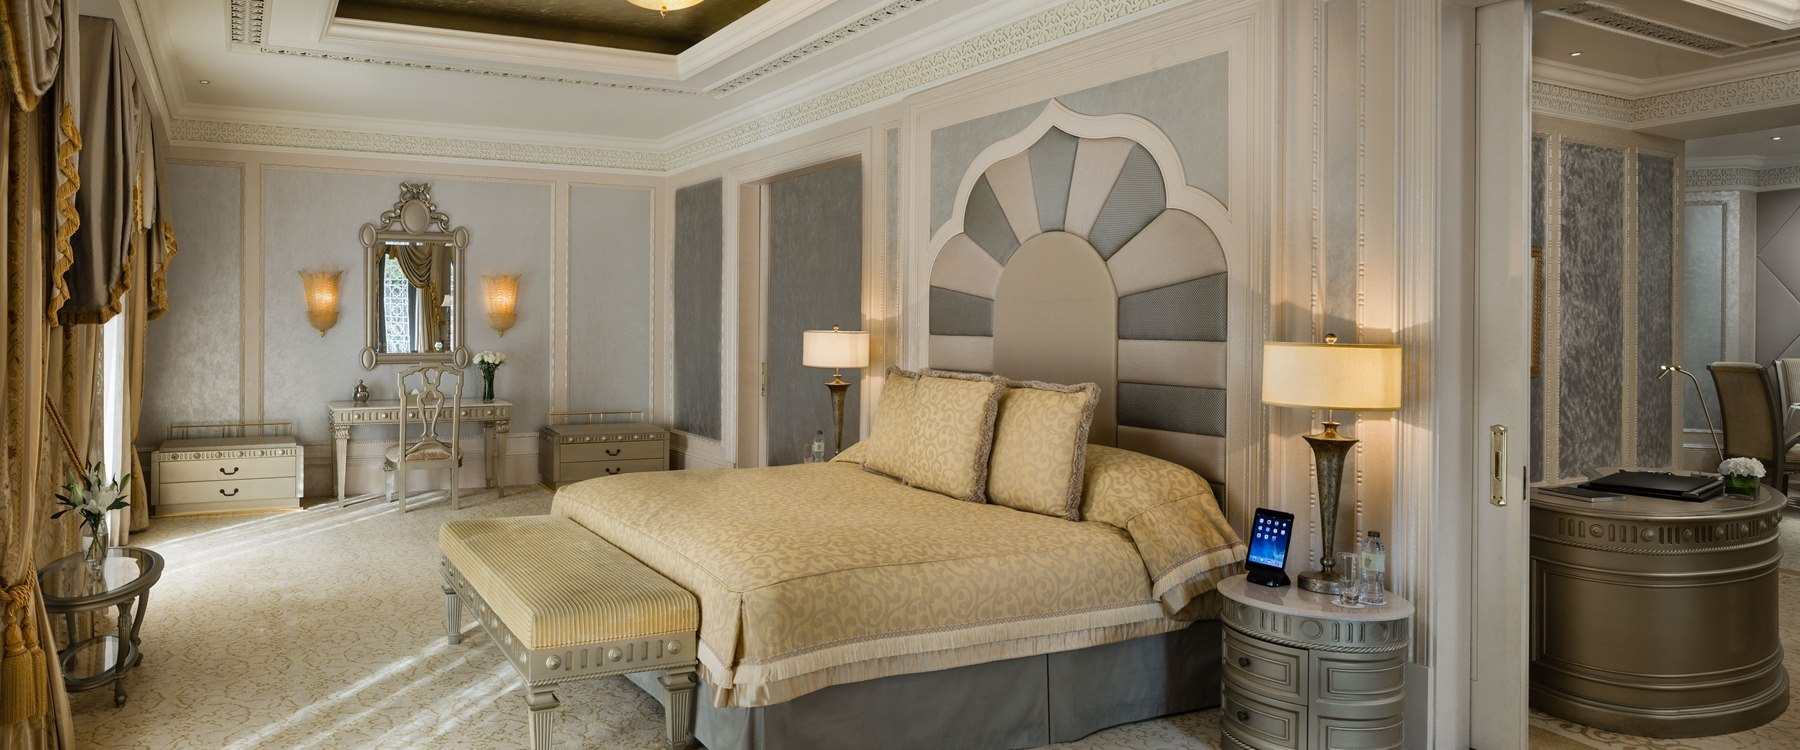 Deluxe Suite Bedroom at Emirates Palace, Abu Dhabi